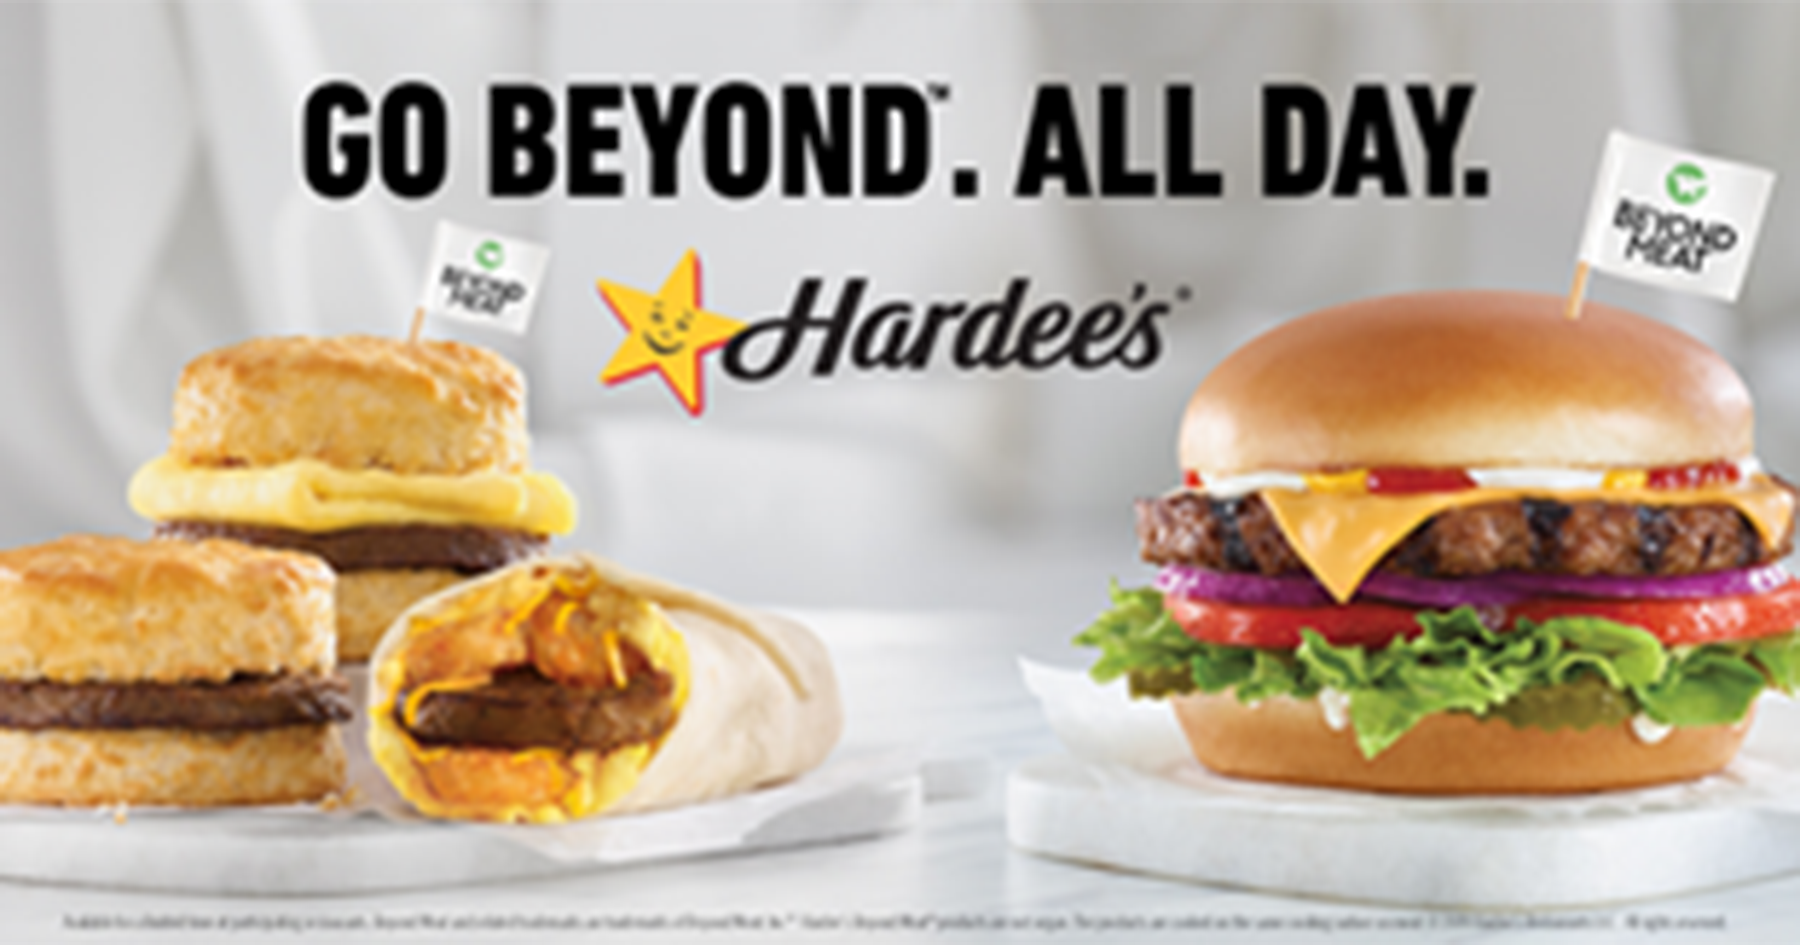 Hardees impossible